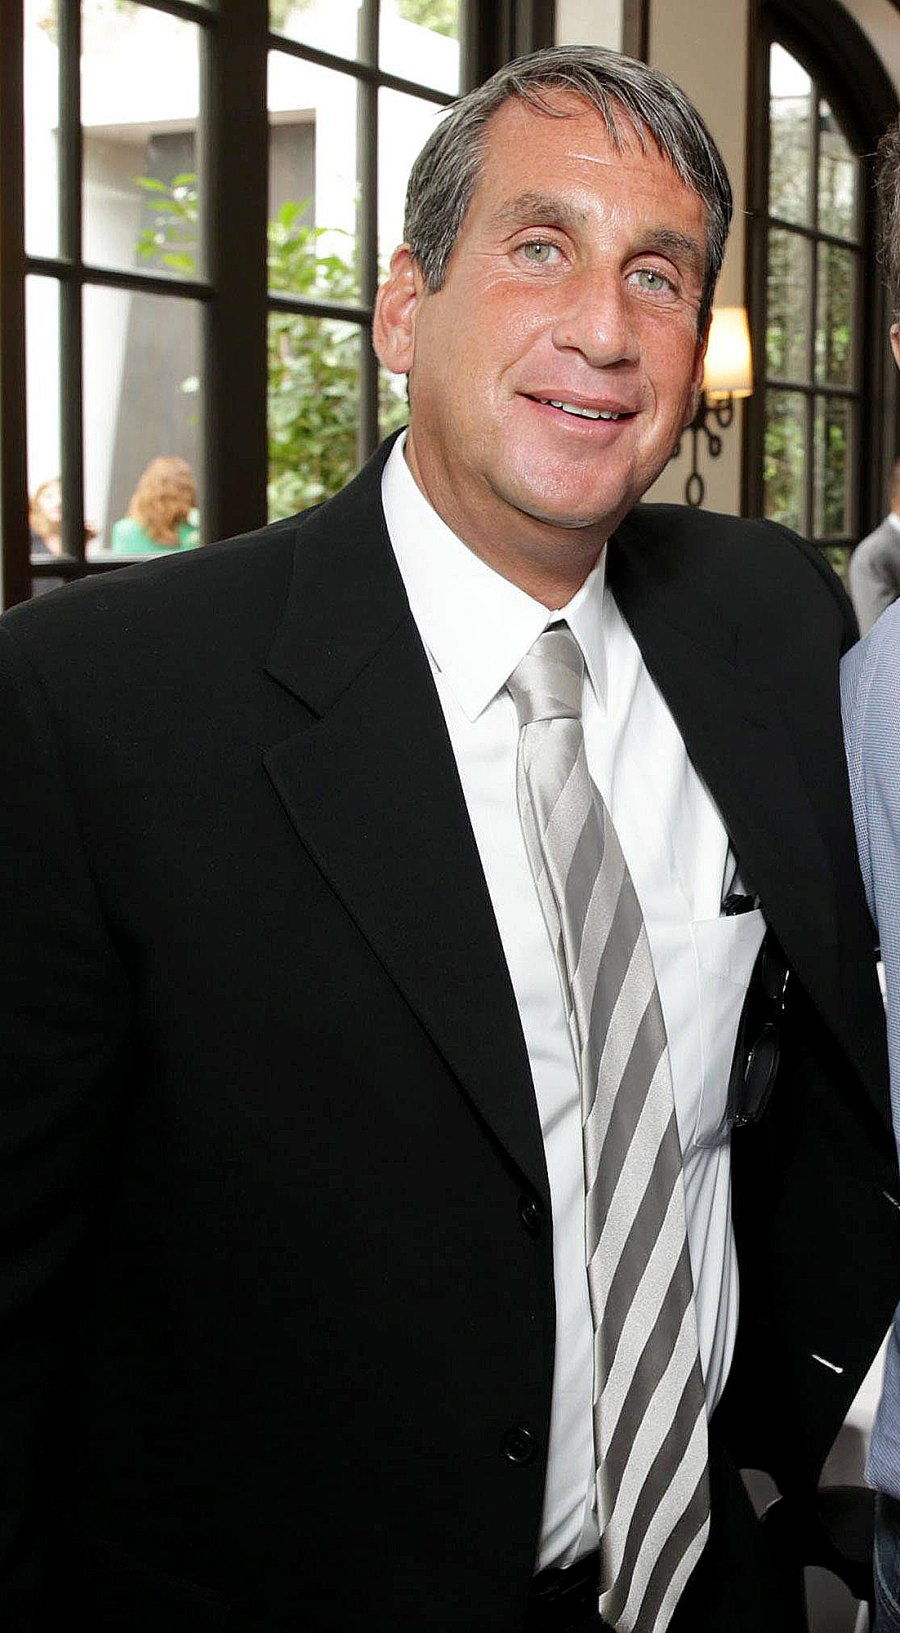 Who Is Bryan Freedman Lawyer Who Negotiated Chris Harrison Payout